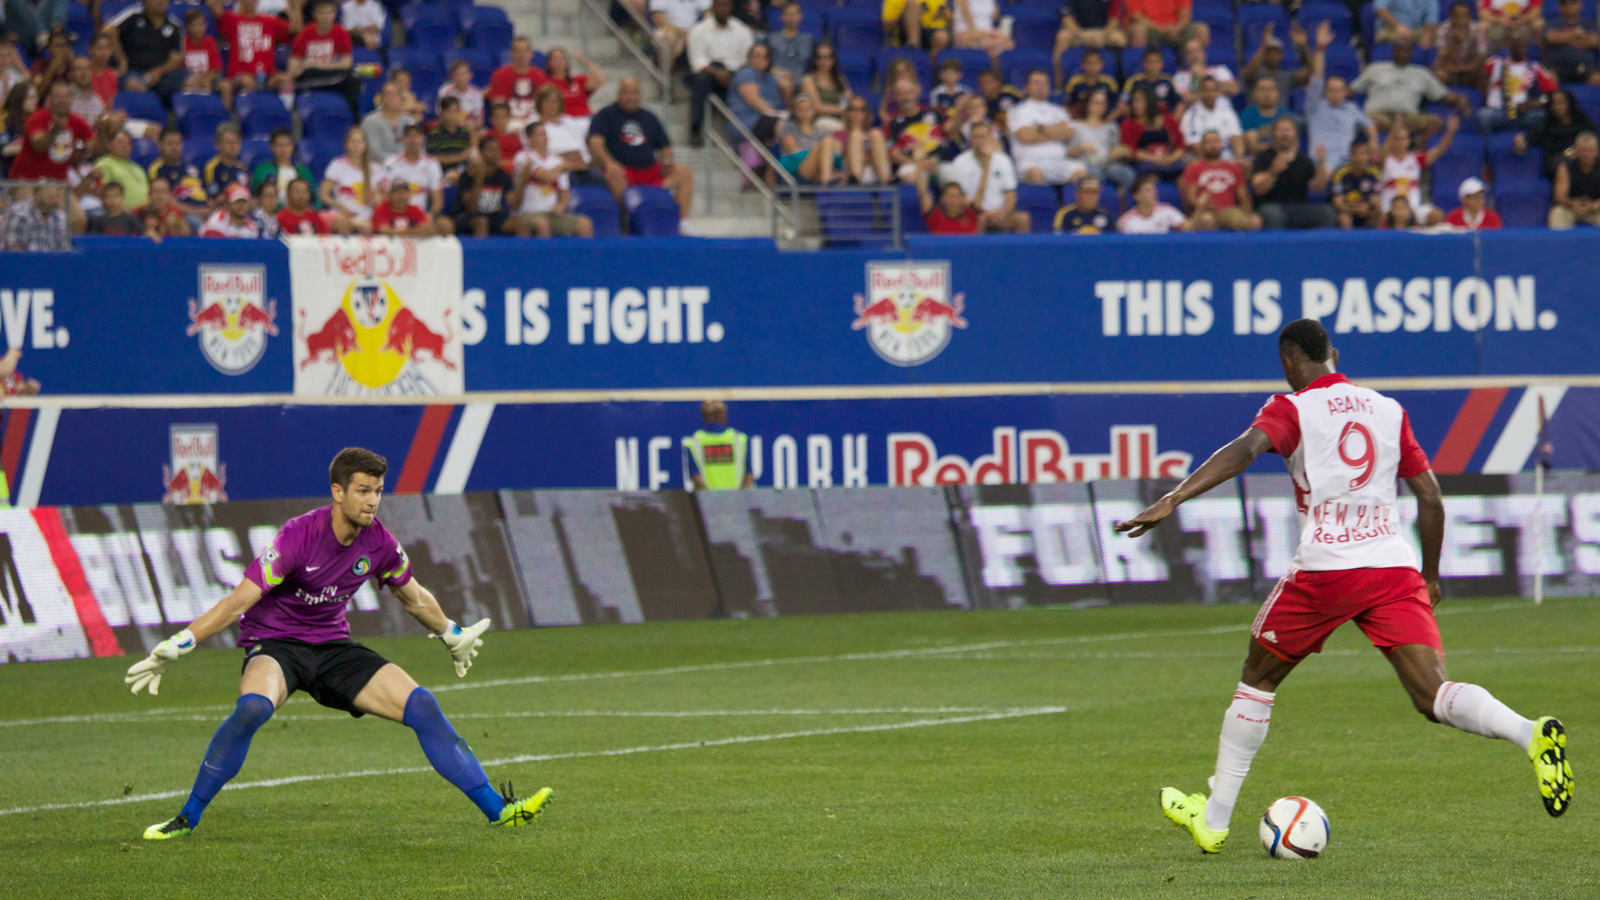 New York Red Bulls striker Anatole Abang (9) goes 1-on-1 against New York Cosmos goalkeeper Jimmy Maurer (1) in the first half of their U.S. Open Cup fifth-round match.